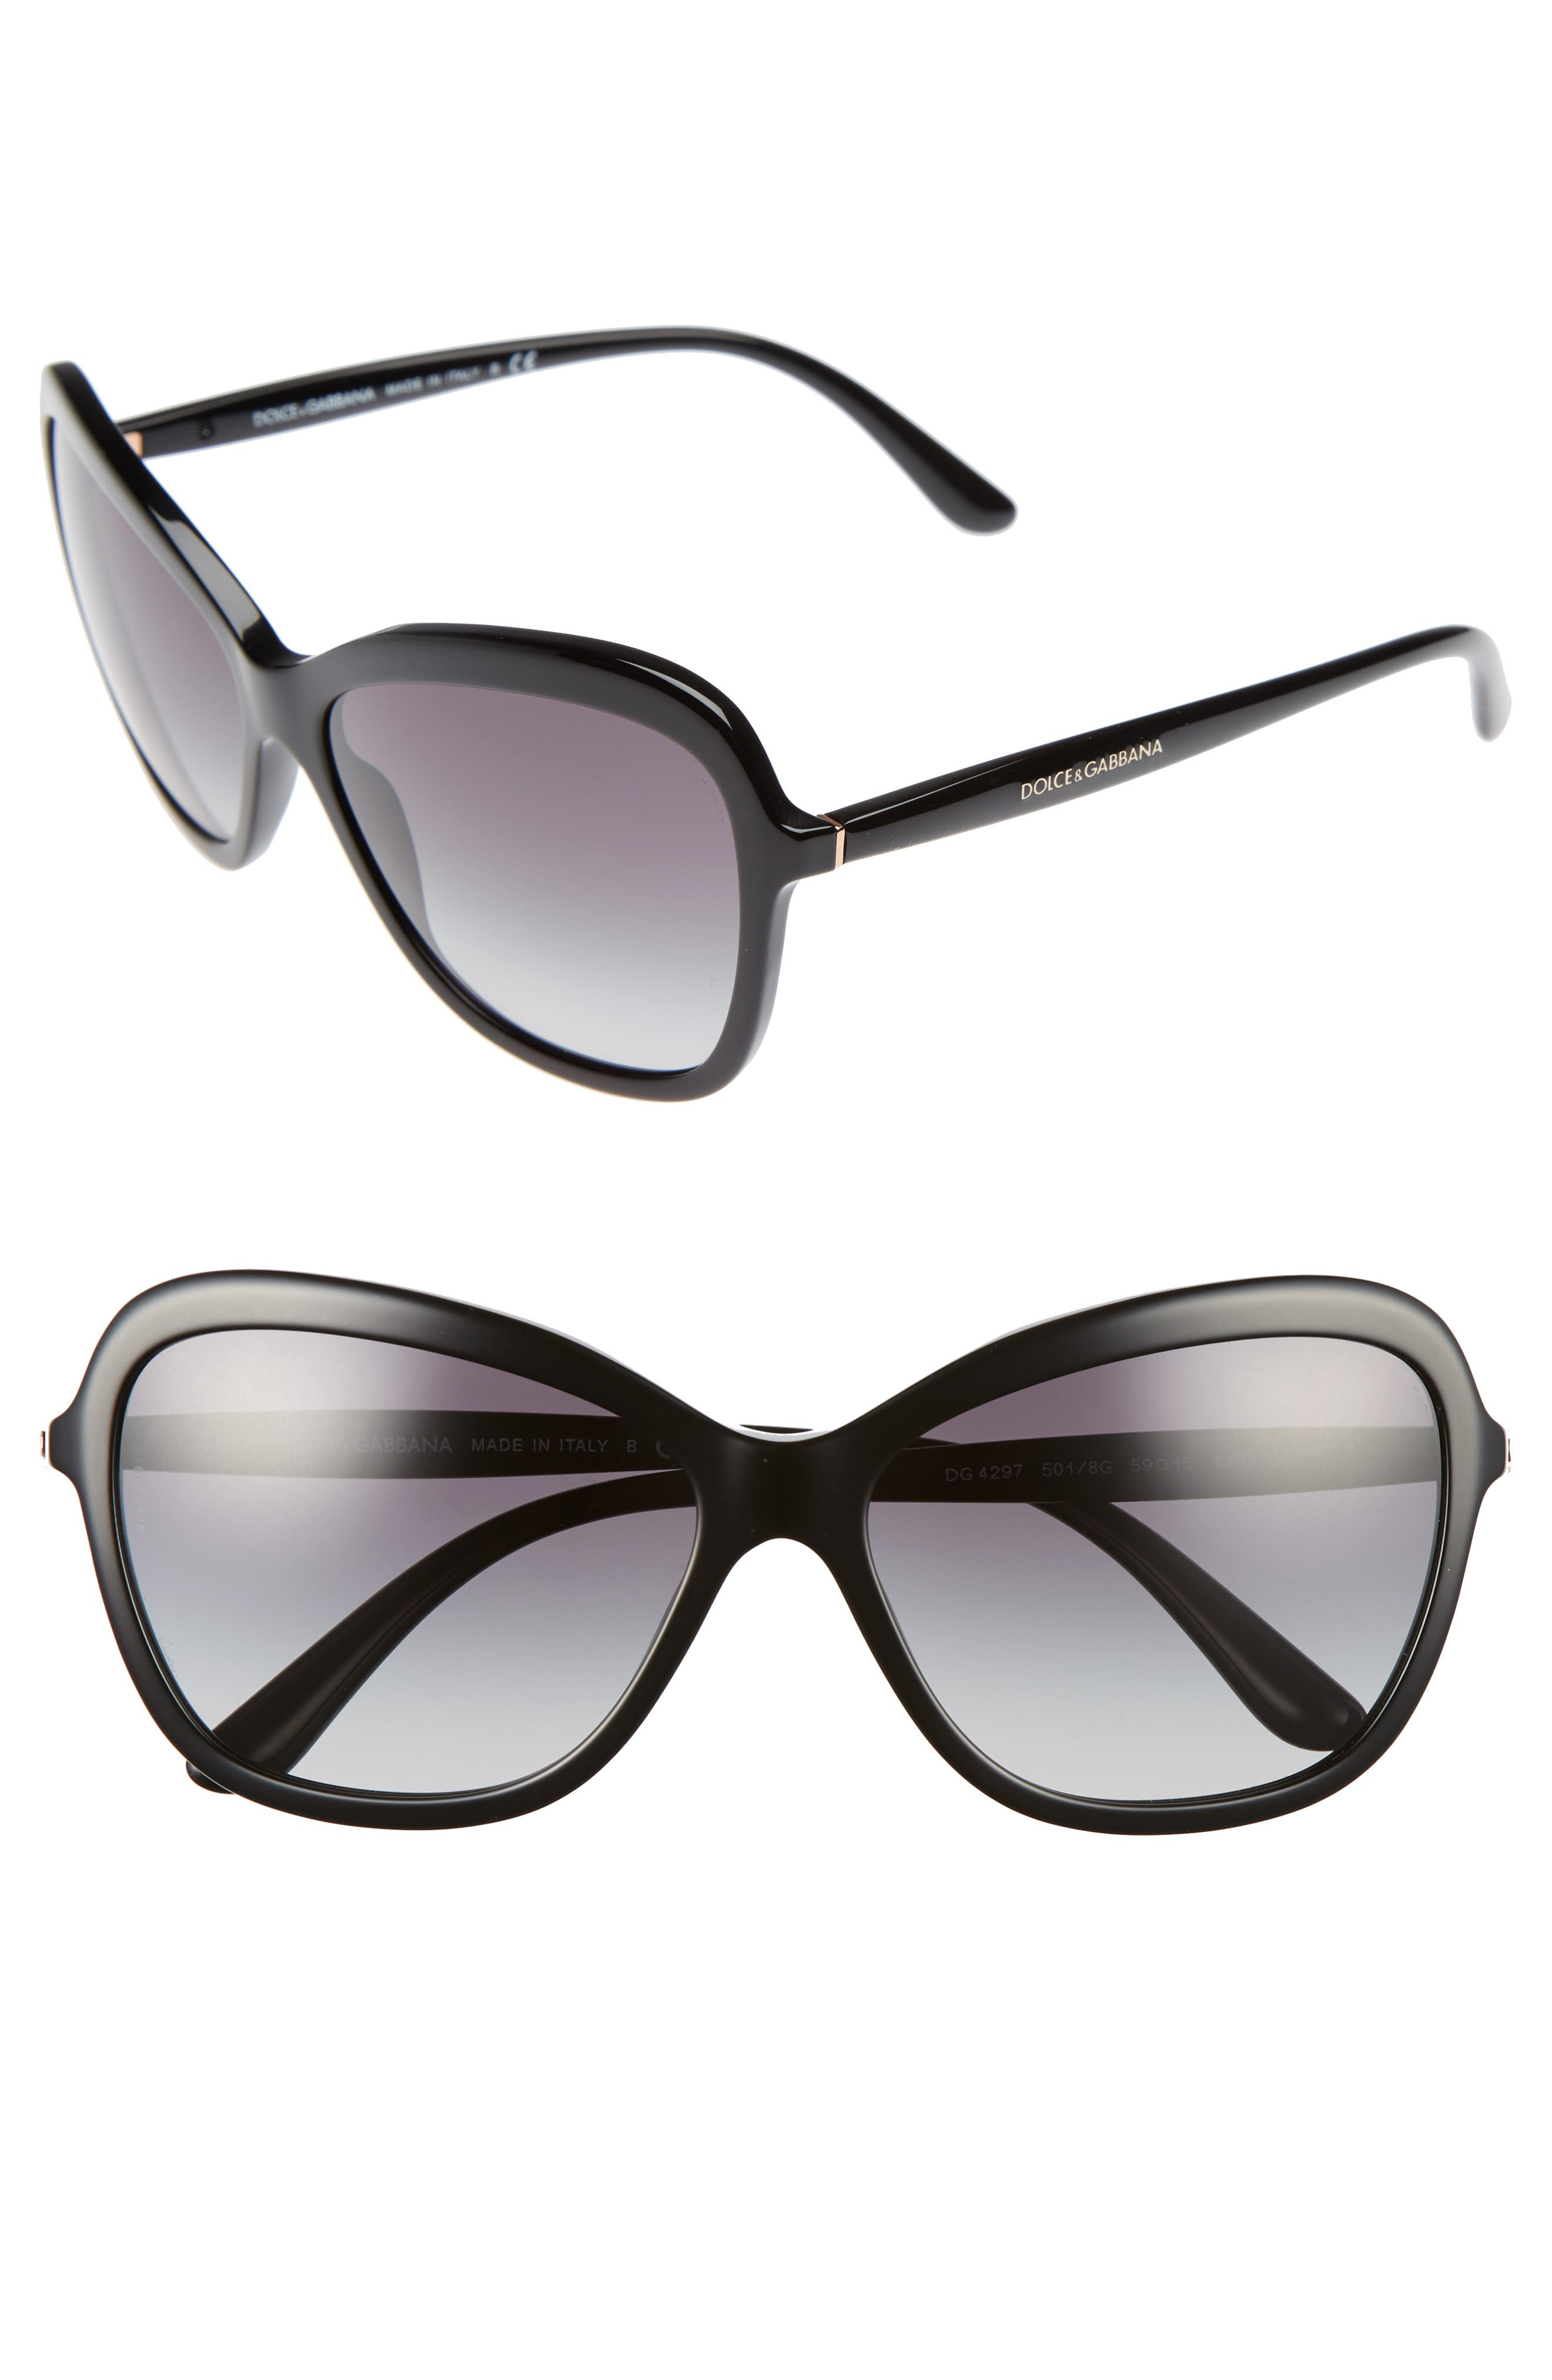 Main Image - Dolce&Gabbana 59mm Gradient Butterfly Sunglasses